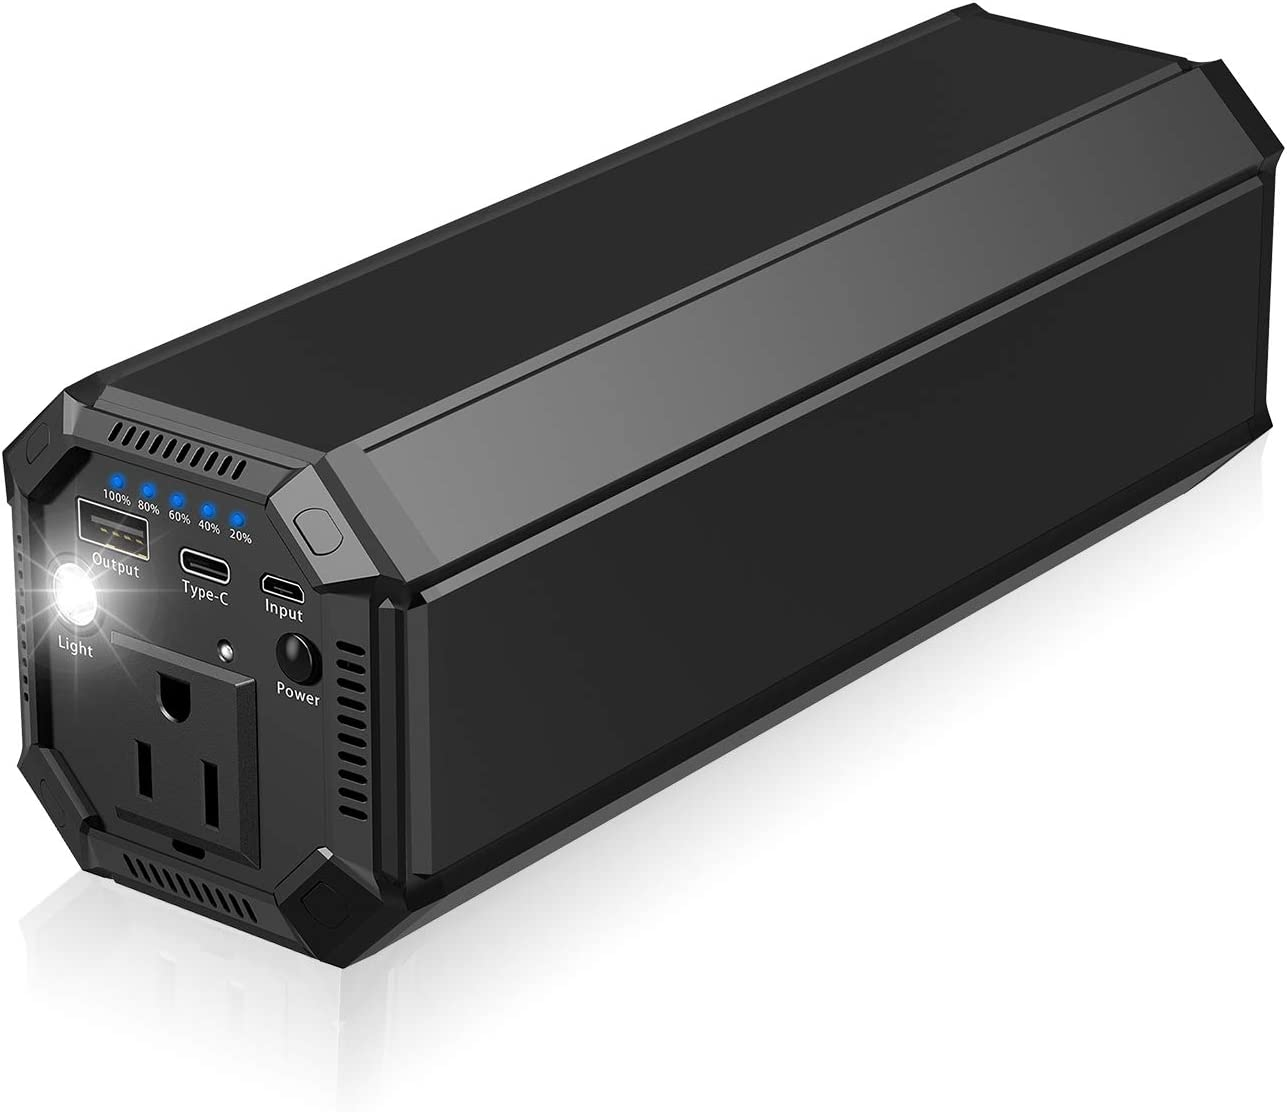 AC Outlet Power Bank, Portable Inverter Power Supply Laptop Charger, Universal 116Wh/31200mAh Power Station 100W Laptop Battery Pack Compatible PC, Laptops, Tablets and Smartphone